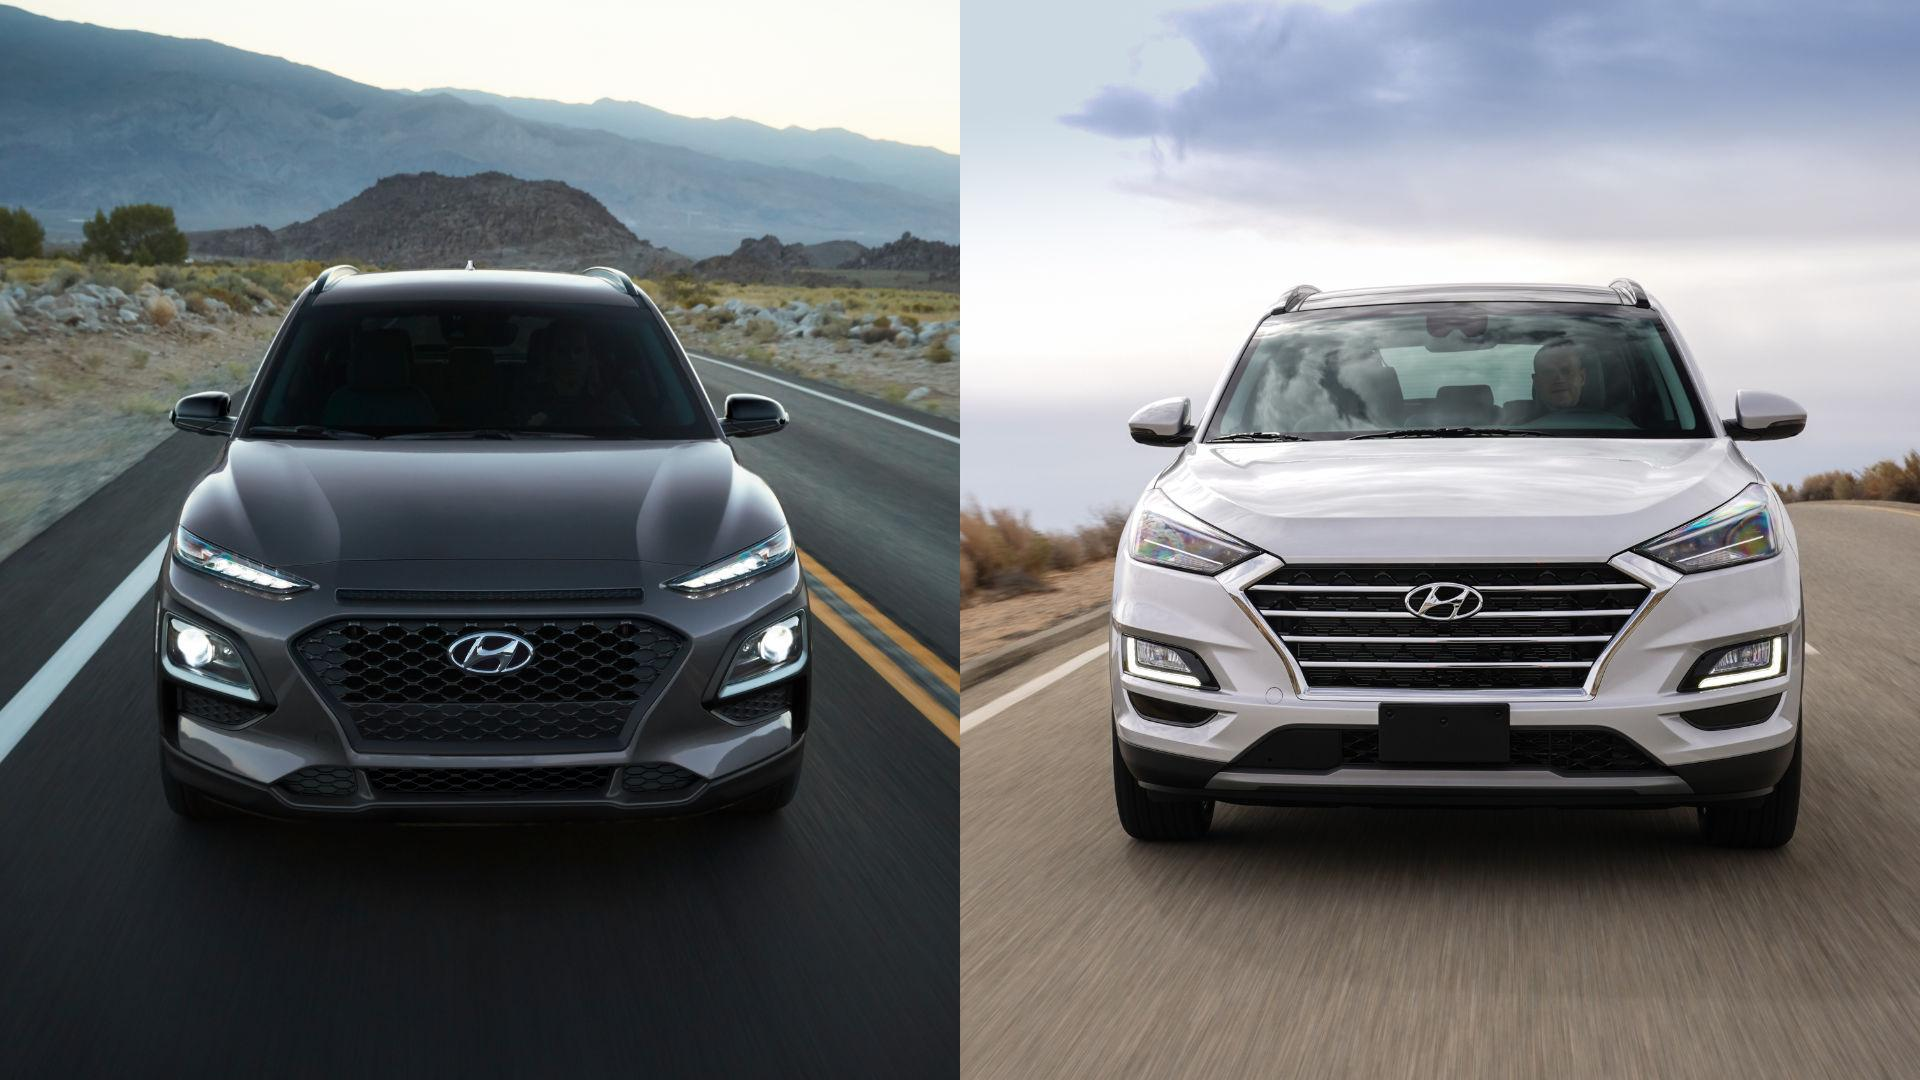 Hyundai Kona vs Tucson - Which crossover is for you?